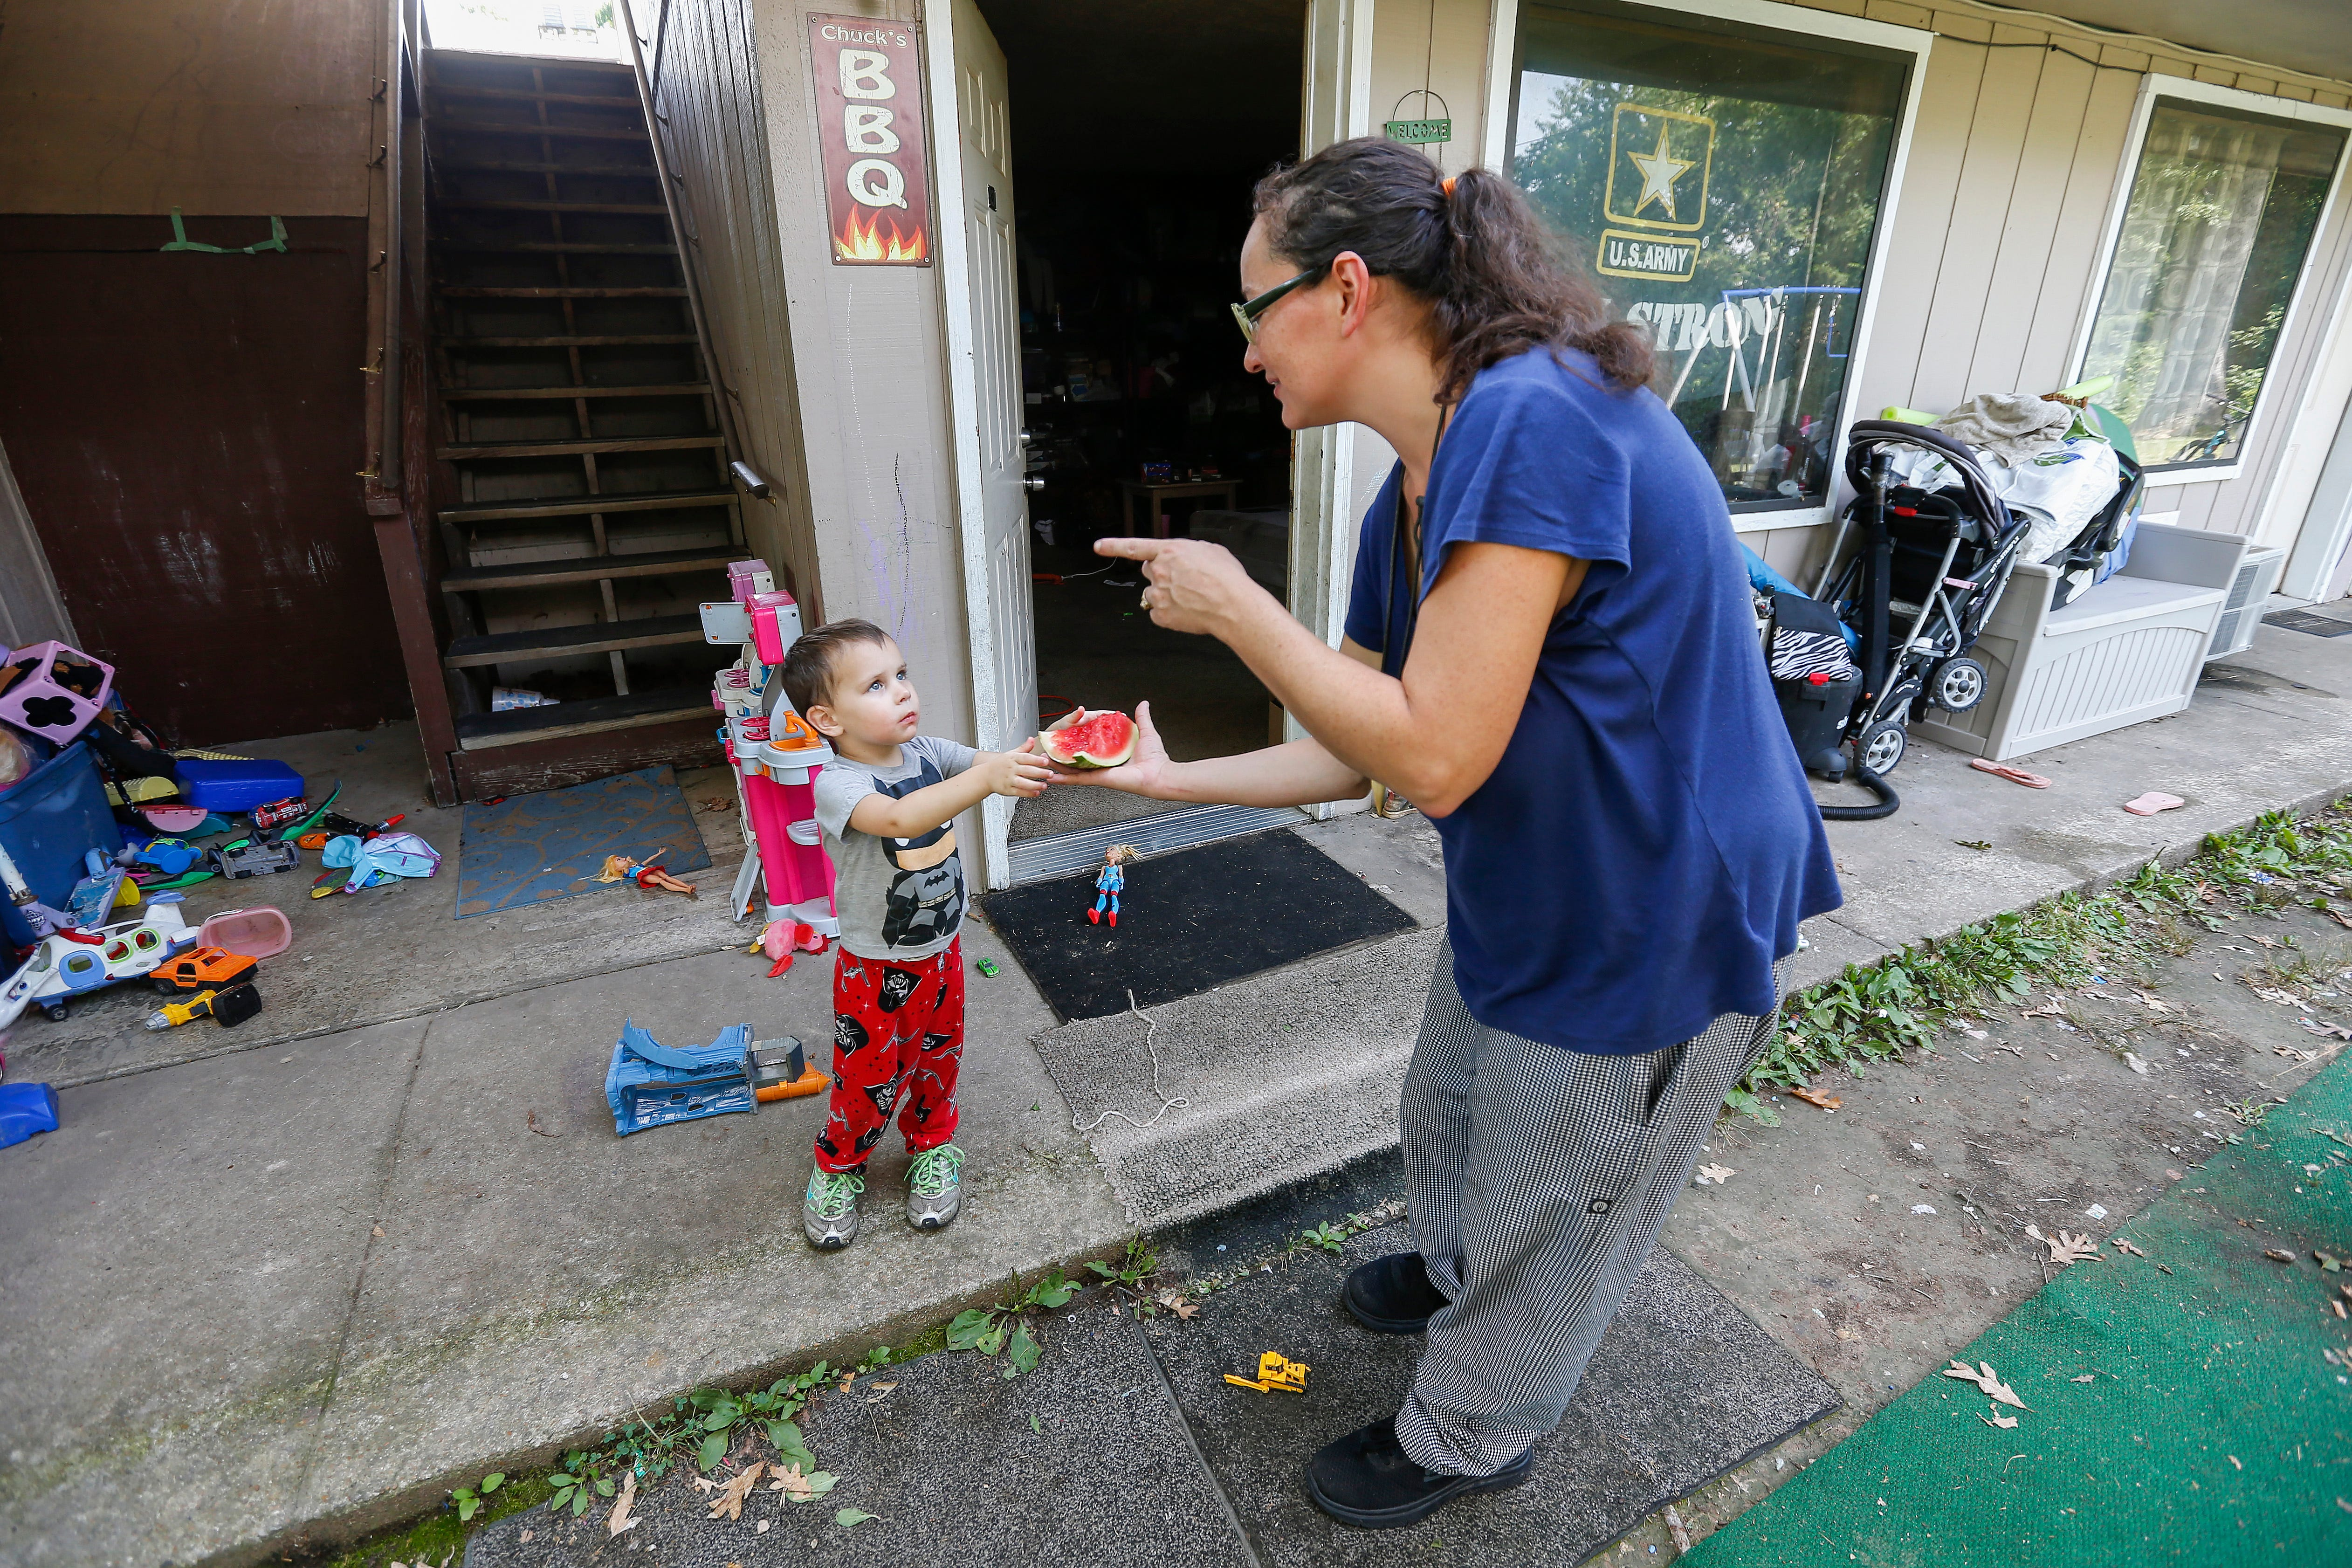 Amanda Norris hands a slice of watermelon to her son Gabriel Norris, 3, outside of their room at the extended stay hotel they live in in Branson on Wednesday, July 18, 2018. They spend most of their time outside their room in the outdoor seating area they created talking with friends and barbecuing.